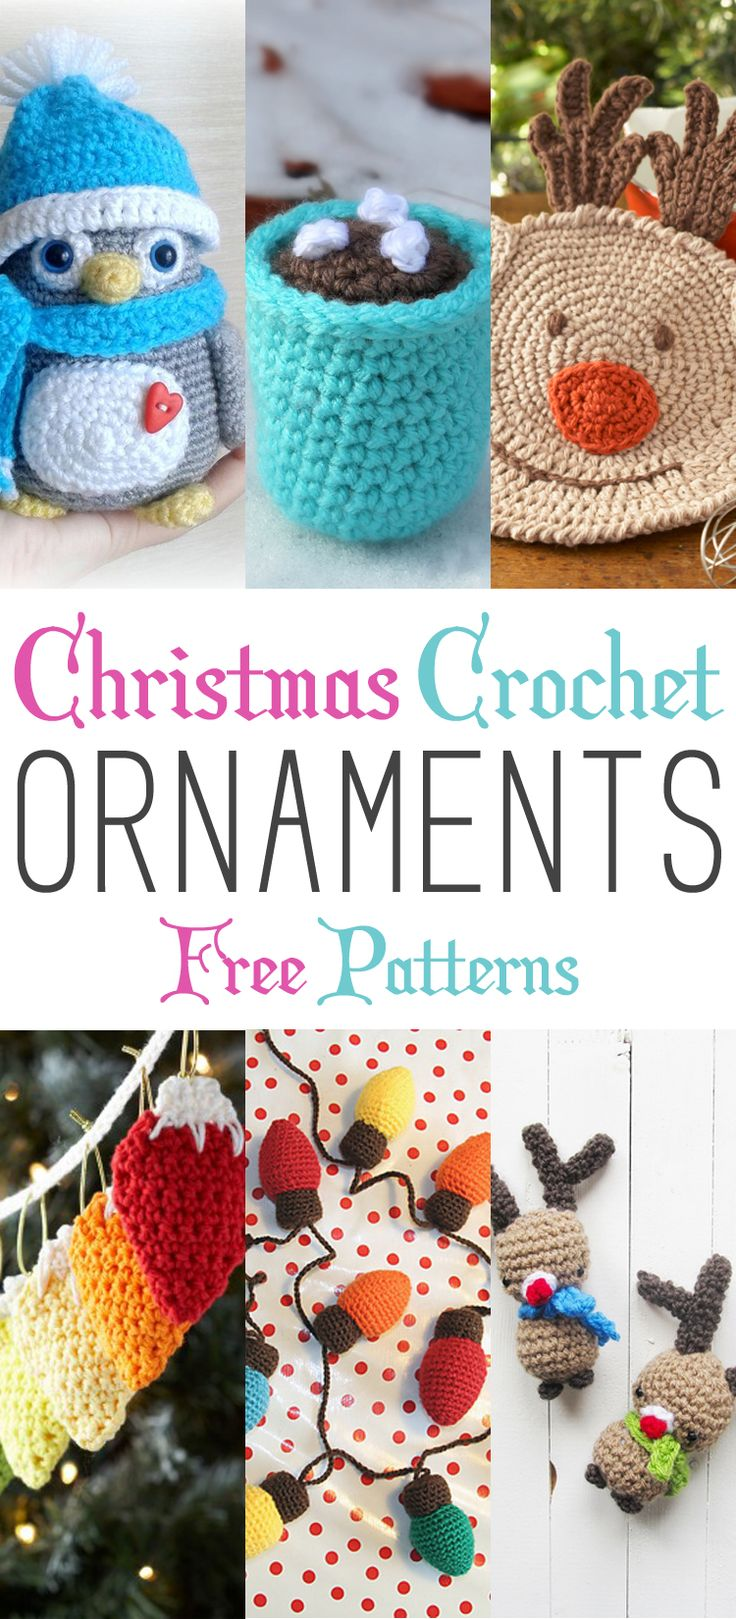 Christmas Crochet Ornaments with Free Patterns – The Cottage Market